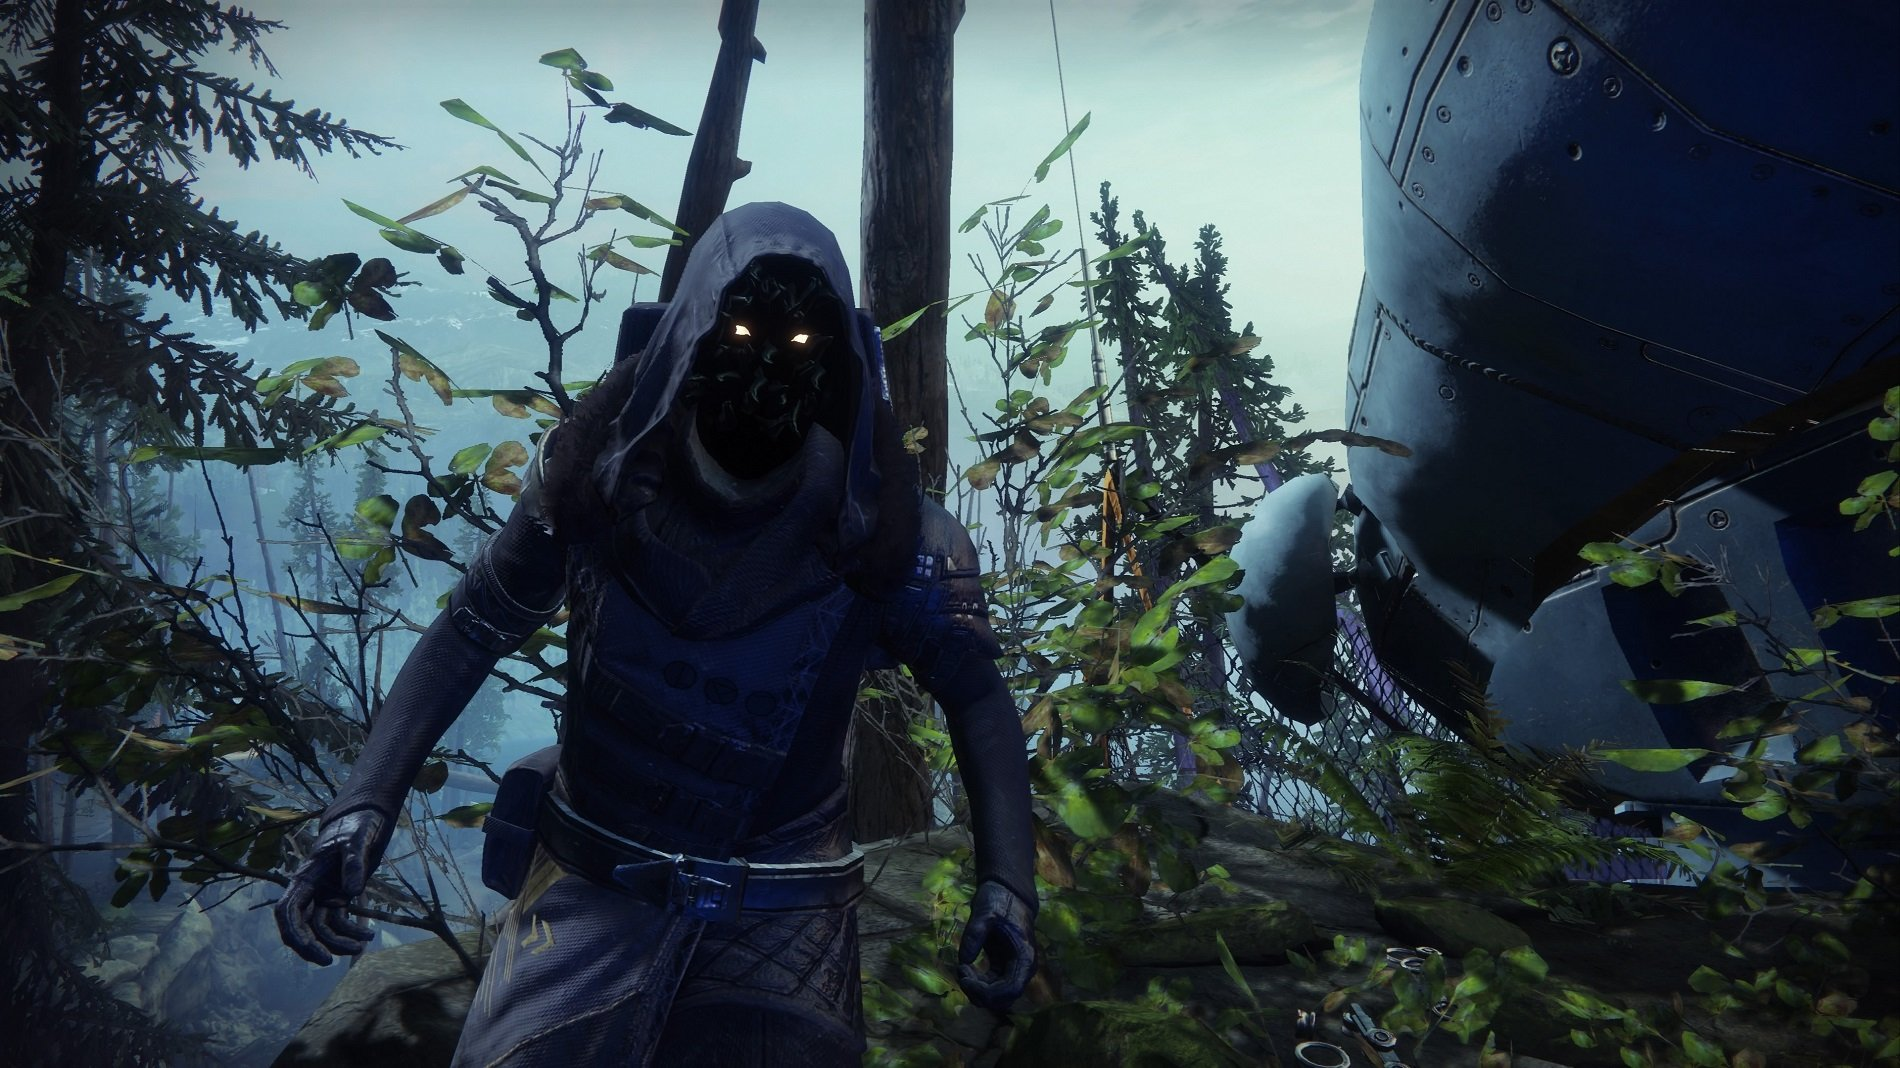 Where to find Xur in Destiny 2 - September 27, 2019